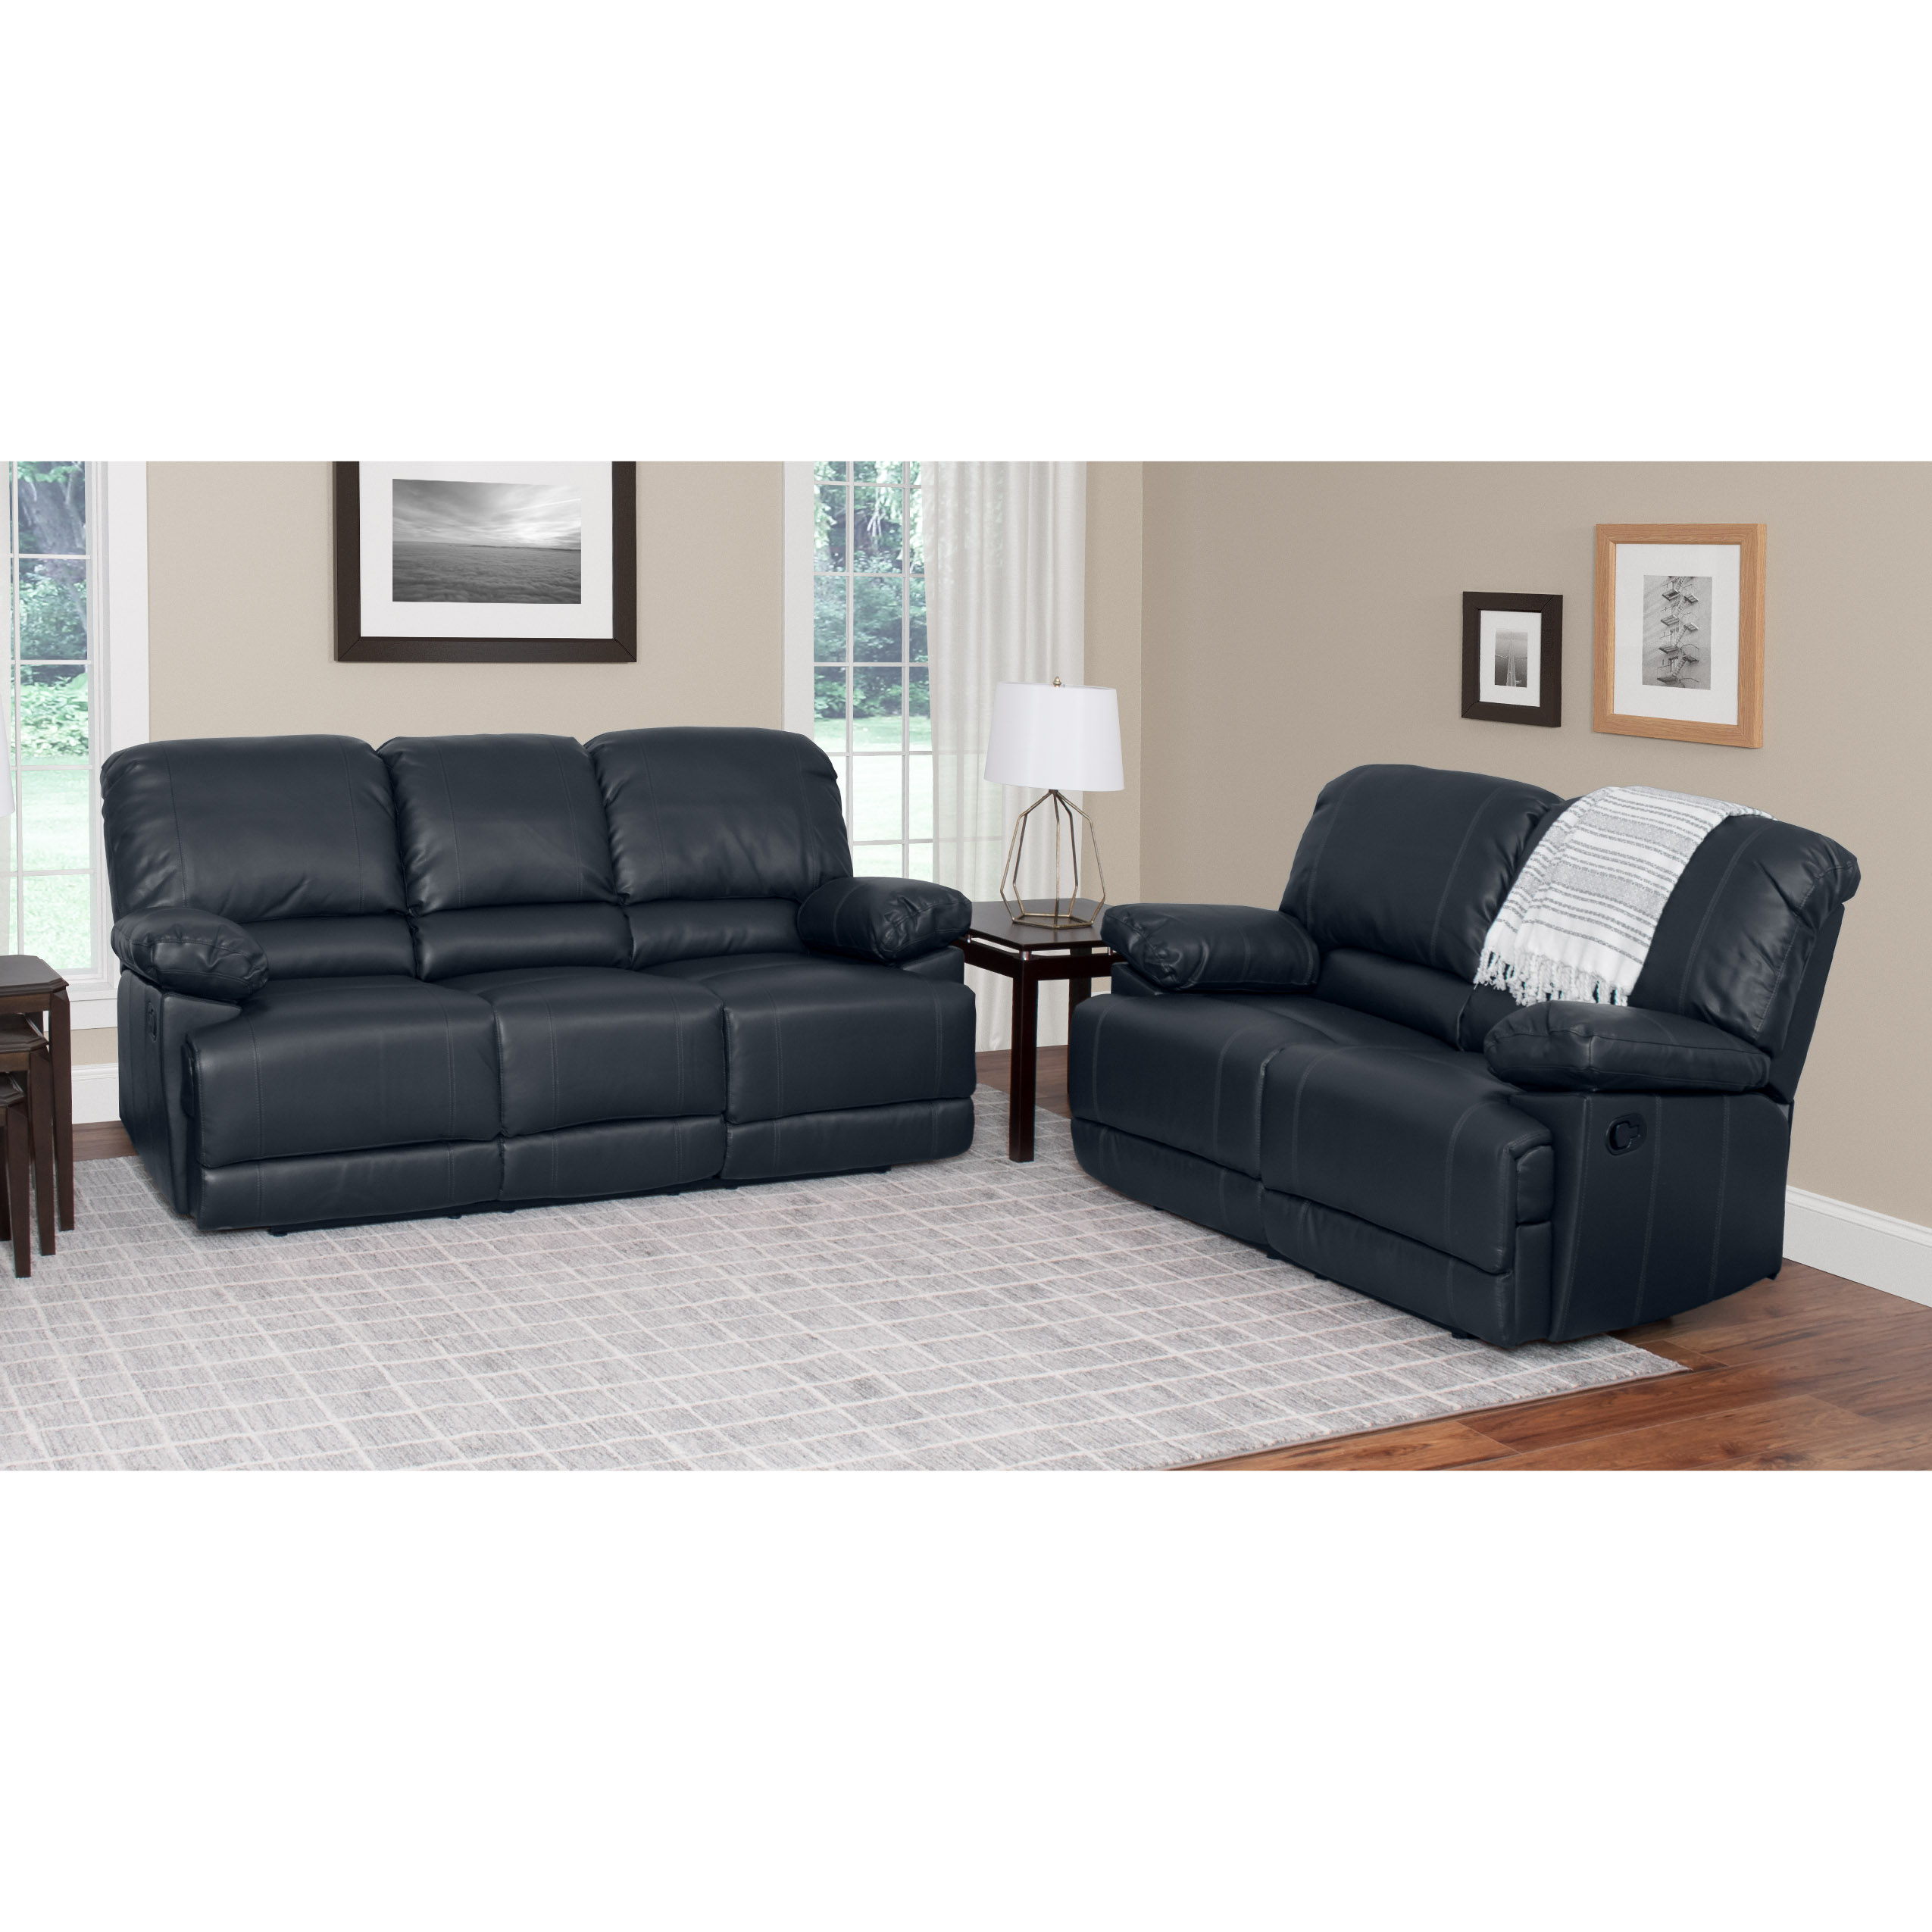 CorLiving 2pc Bonded Leather Reclining Sofa Set